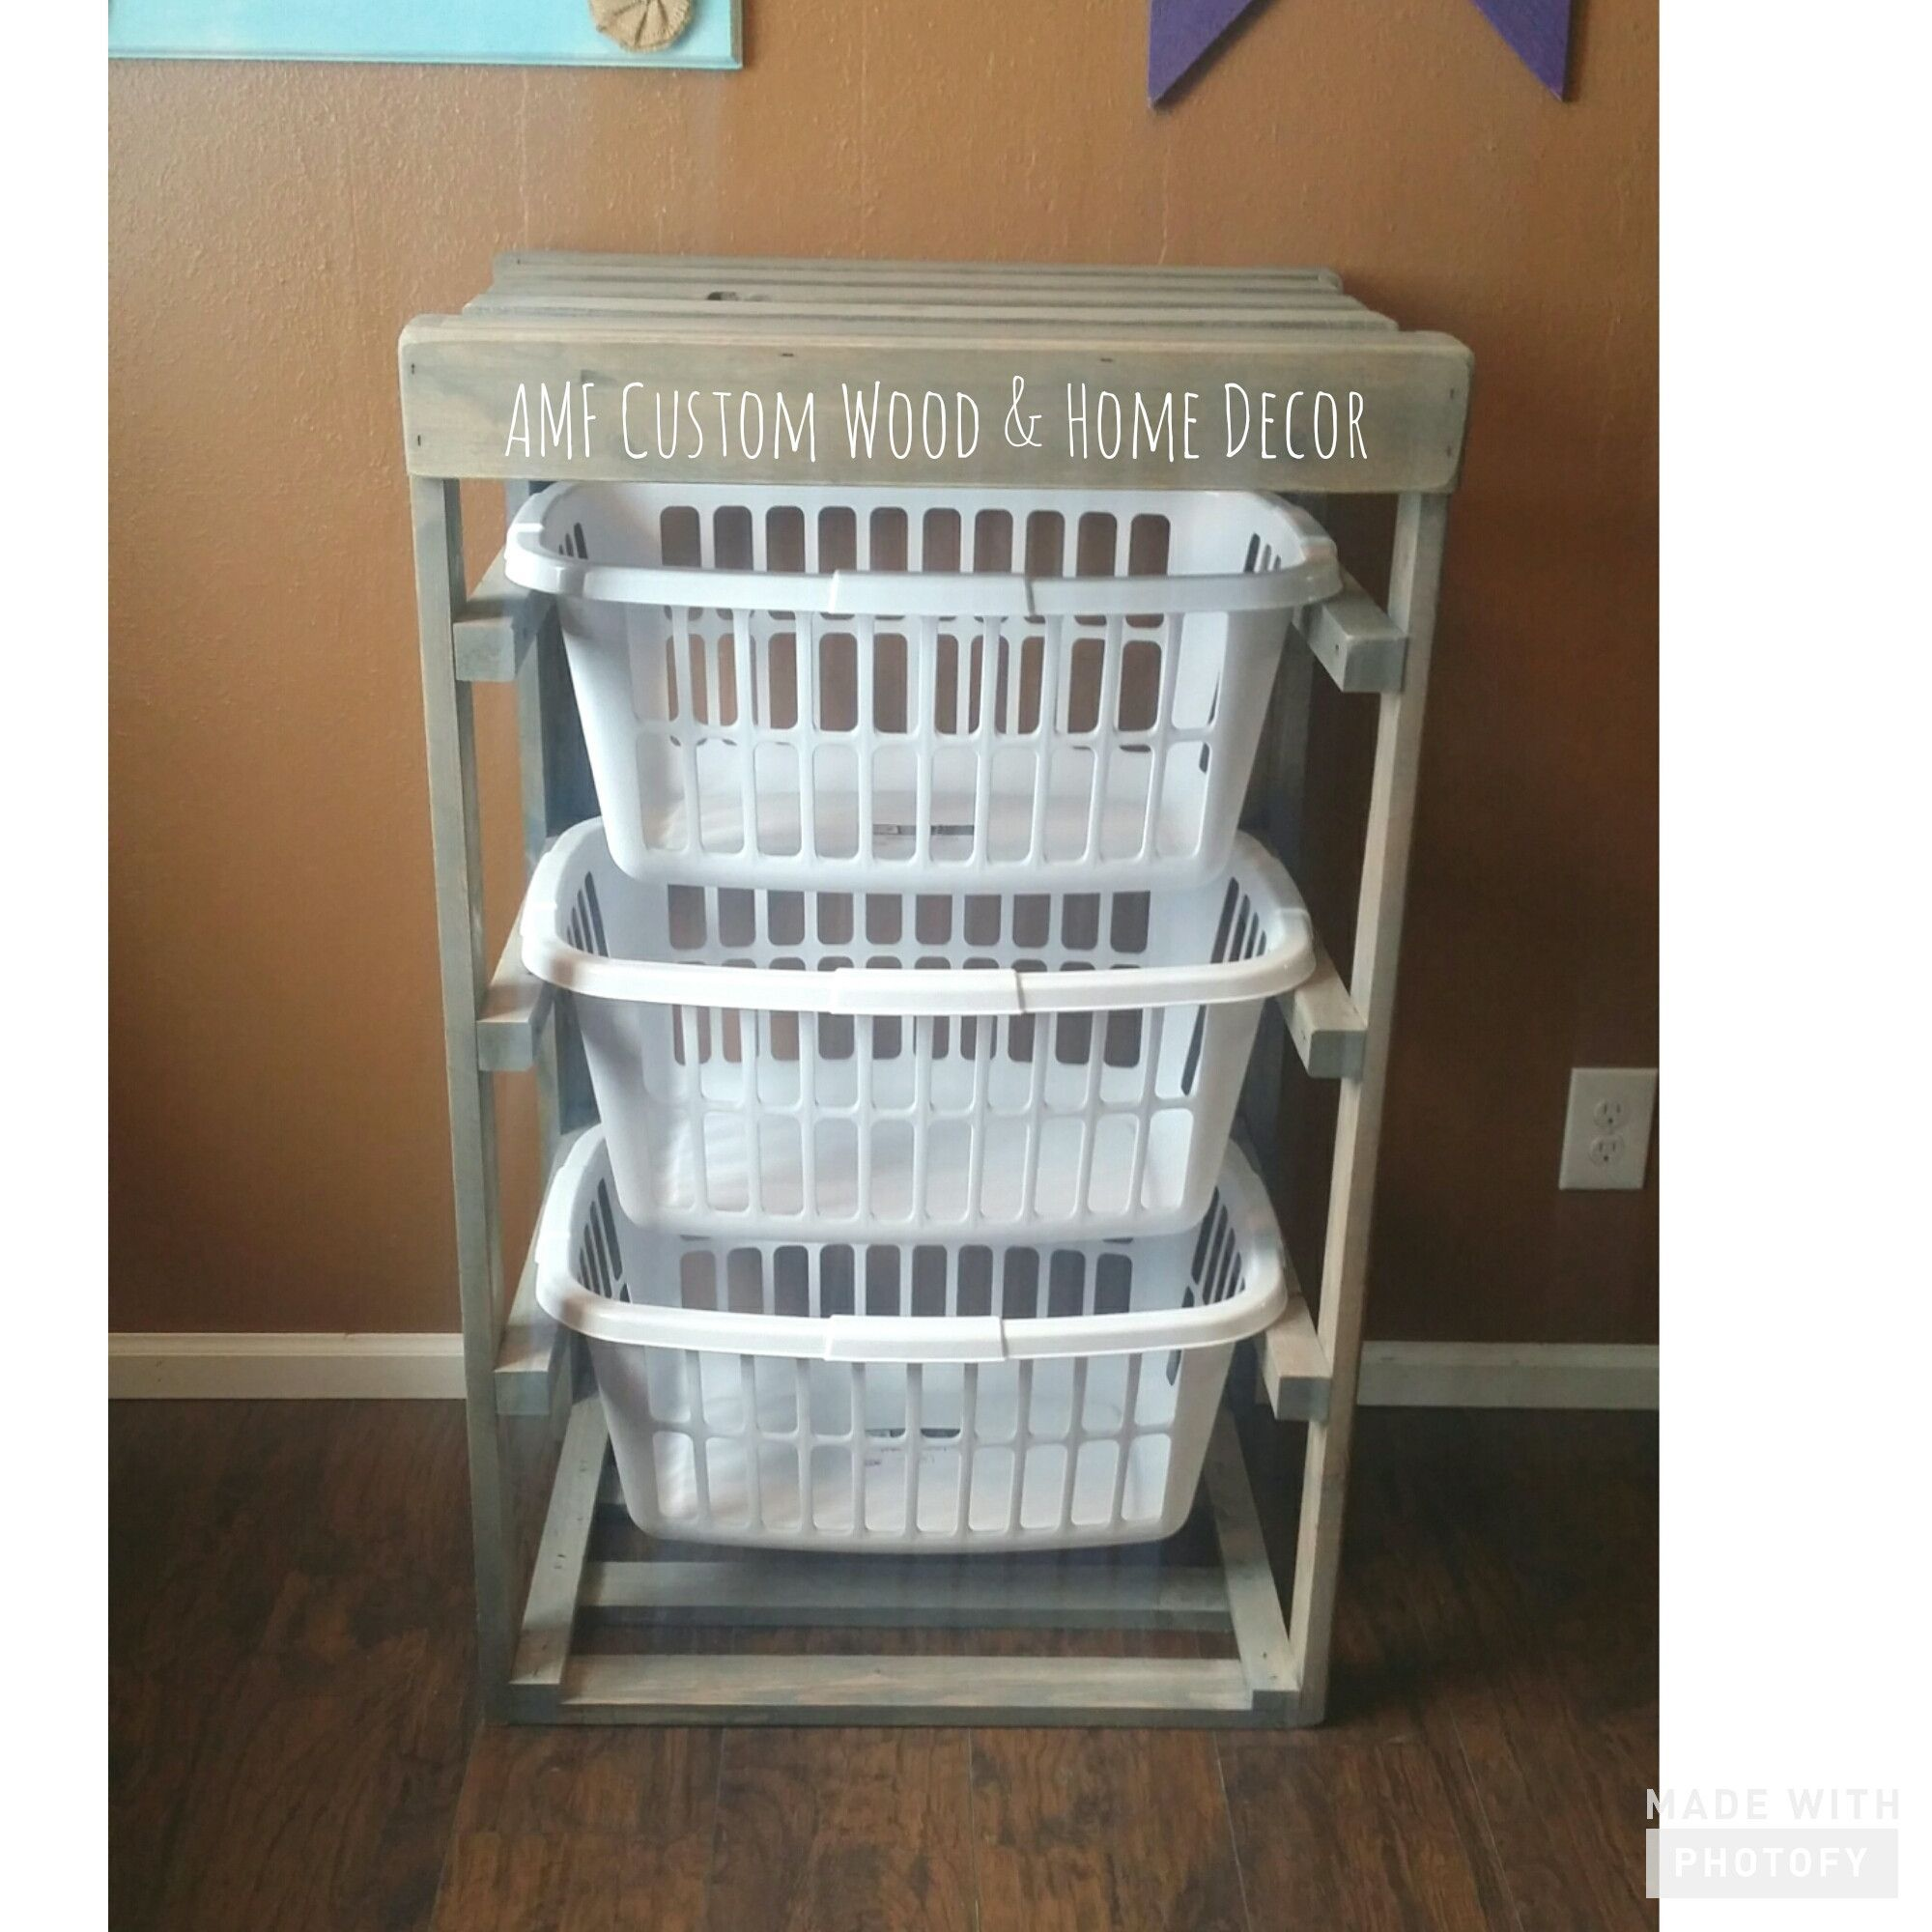 Rustic Wood Laundry Basket Holder Laundry Basket Holder Laundry Basket Storage Laundry Room Decor